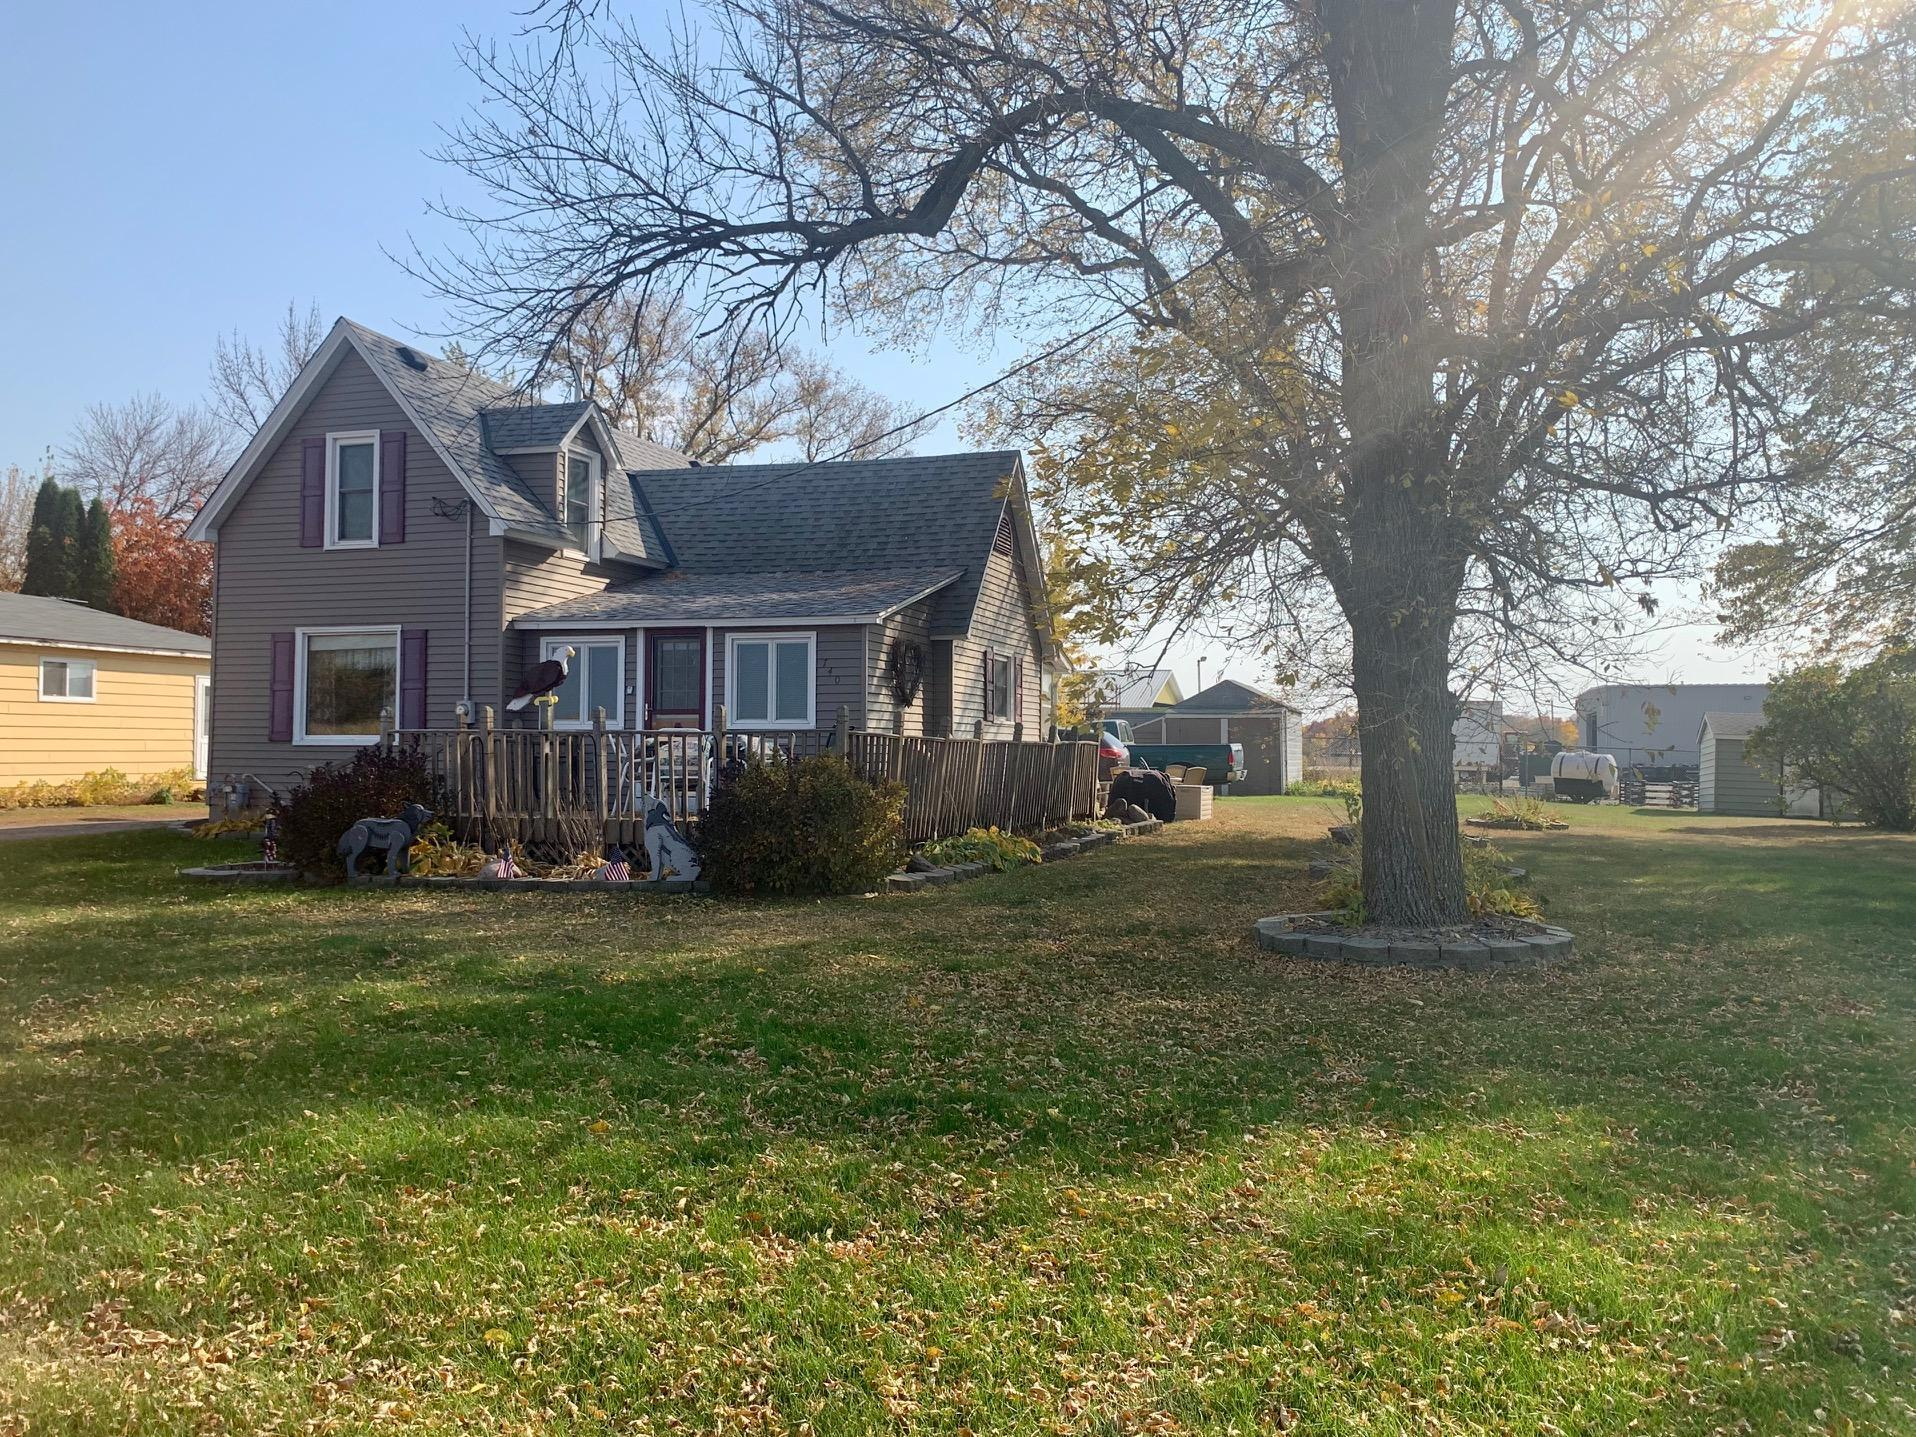 Small town charm in a convenient location. Come see this nicely maintained older home with all of the charm you've come to expect. The expensive upgrades have been done. Yet there is plenty of opportunity for you to build equity as well. Call your realtor today and make your dream of owning a reality.